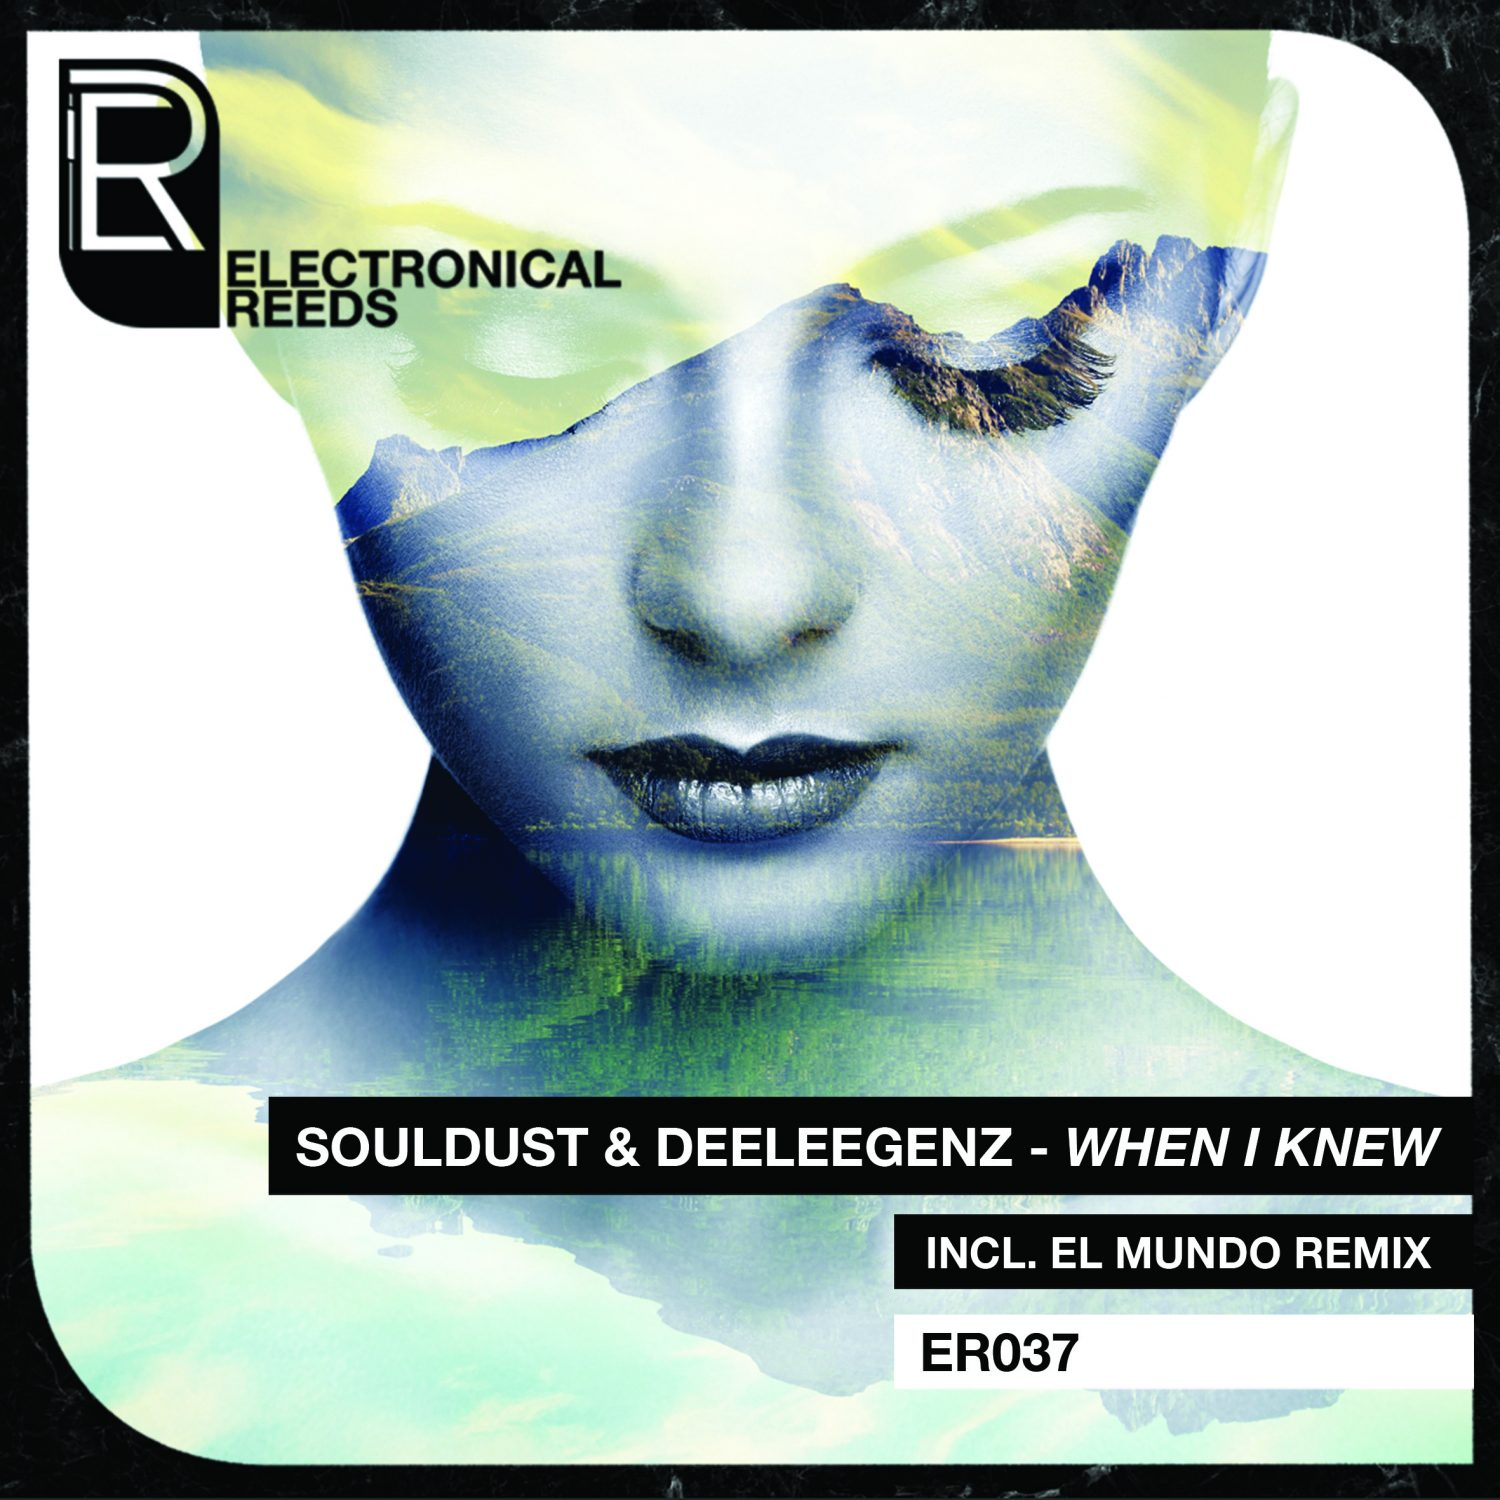 ER037 - Souldust & Deeleegenz - When I Knew (incl. El Mundo Remix) - Electronical Reeds